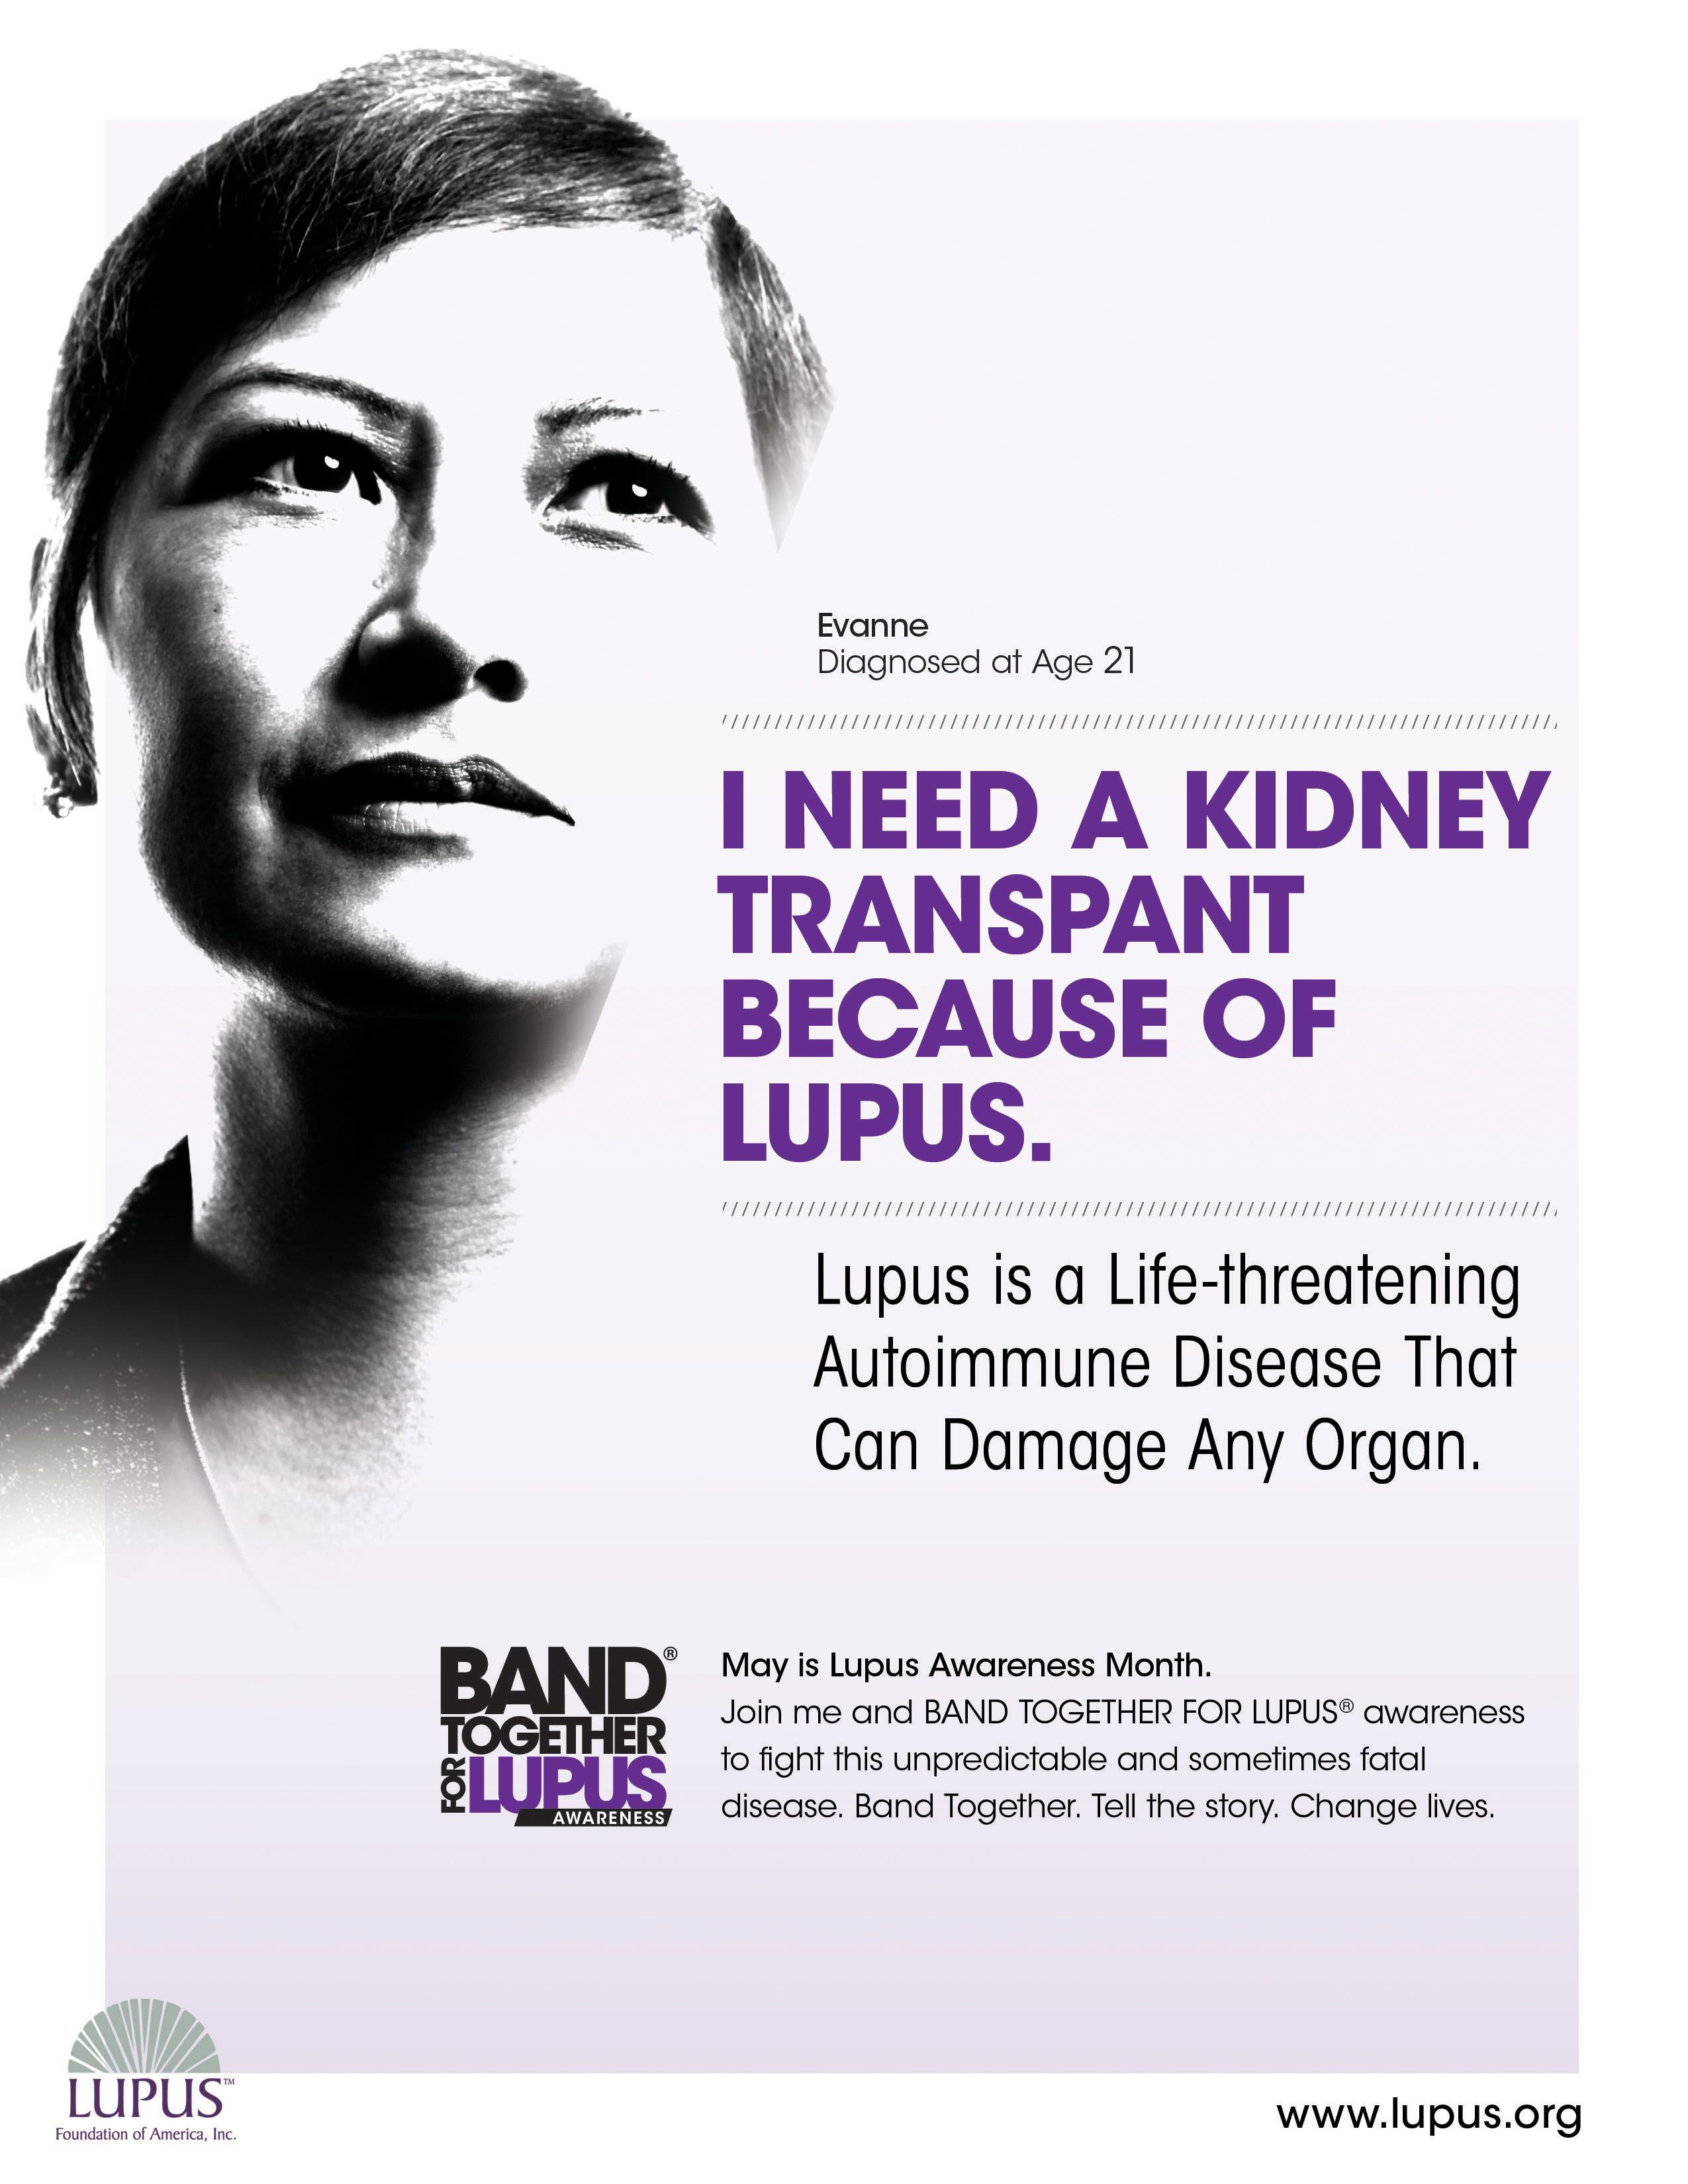 Lupus is a Life-threatening Autoimmune Disease that can ...